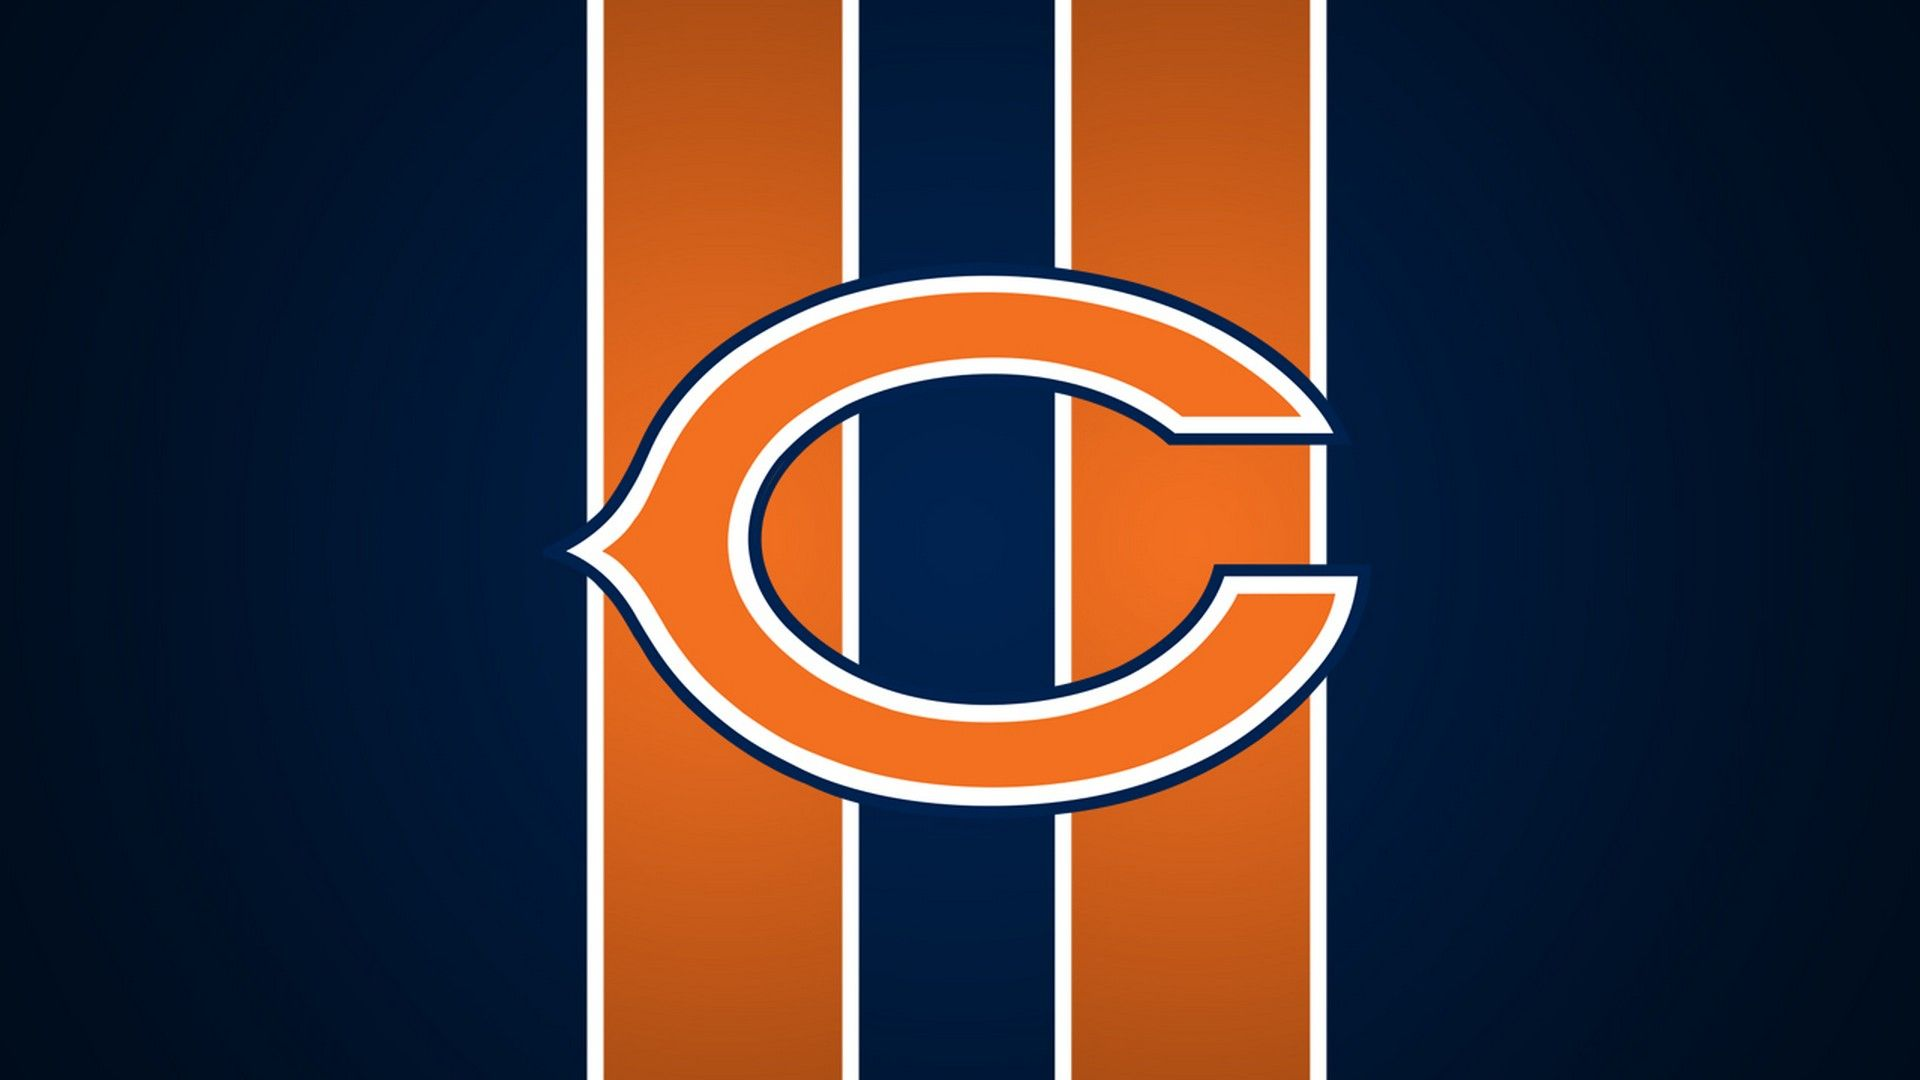 Chicago Bears Wallpaper HD